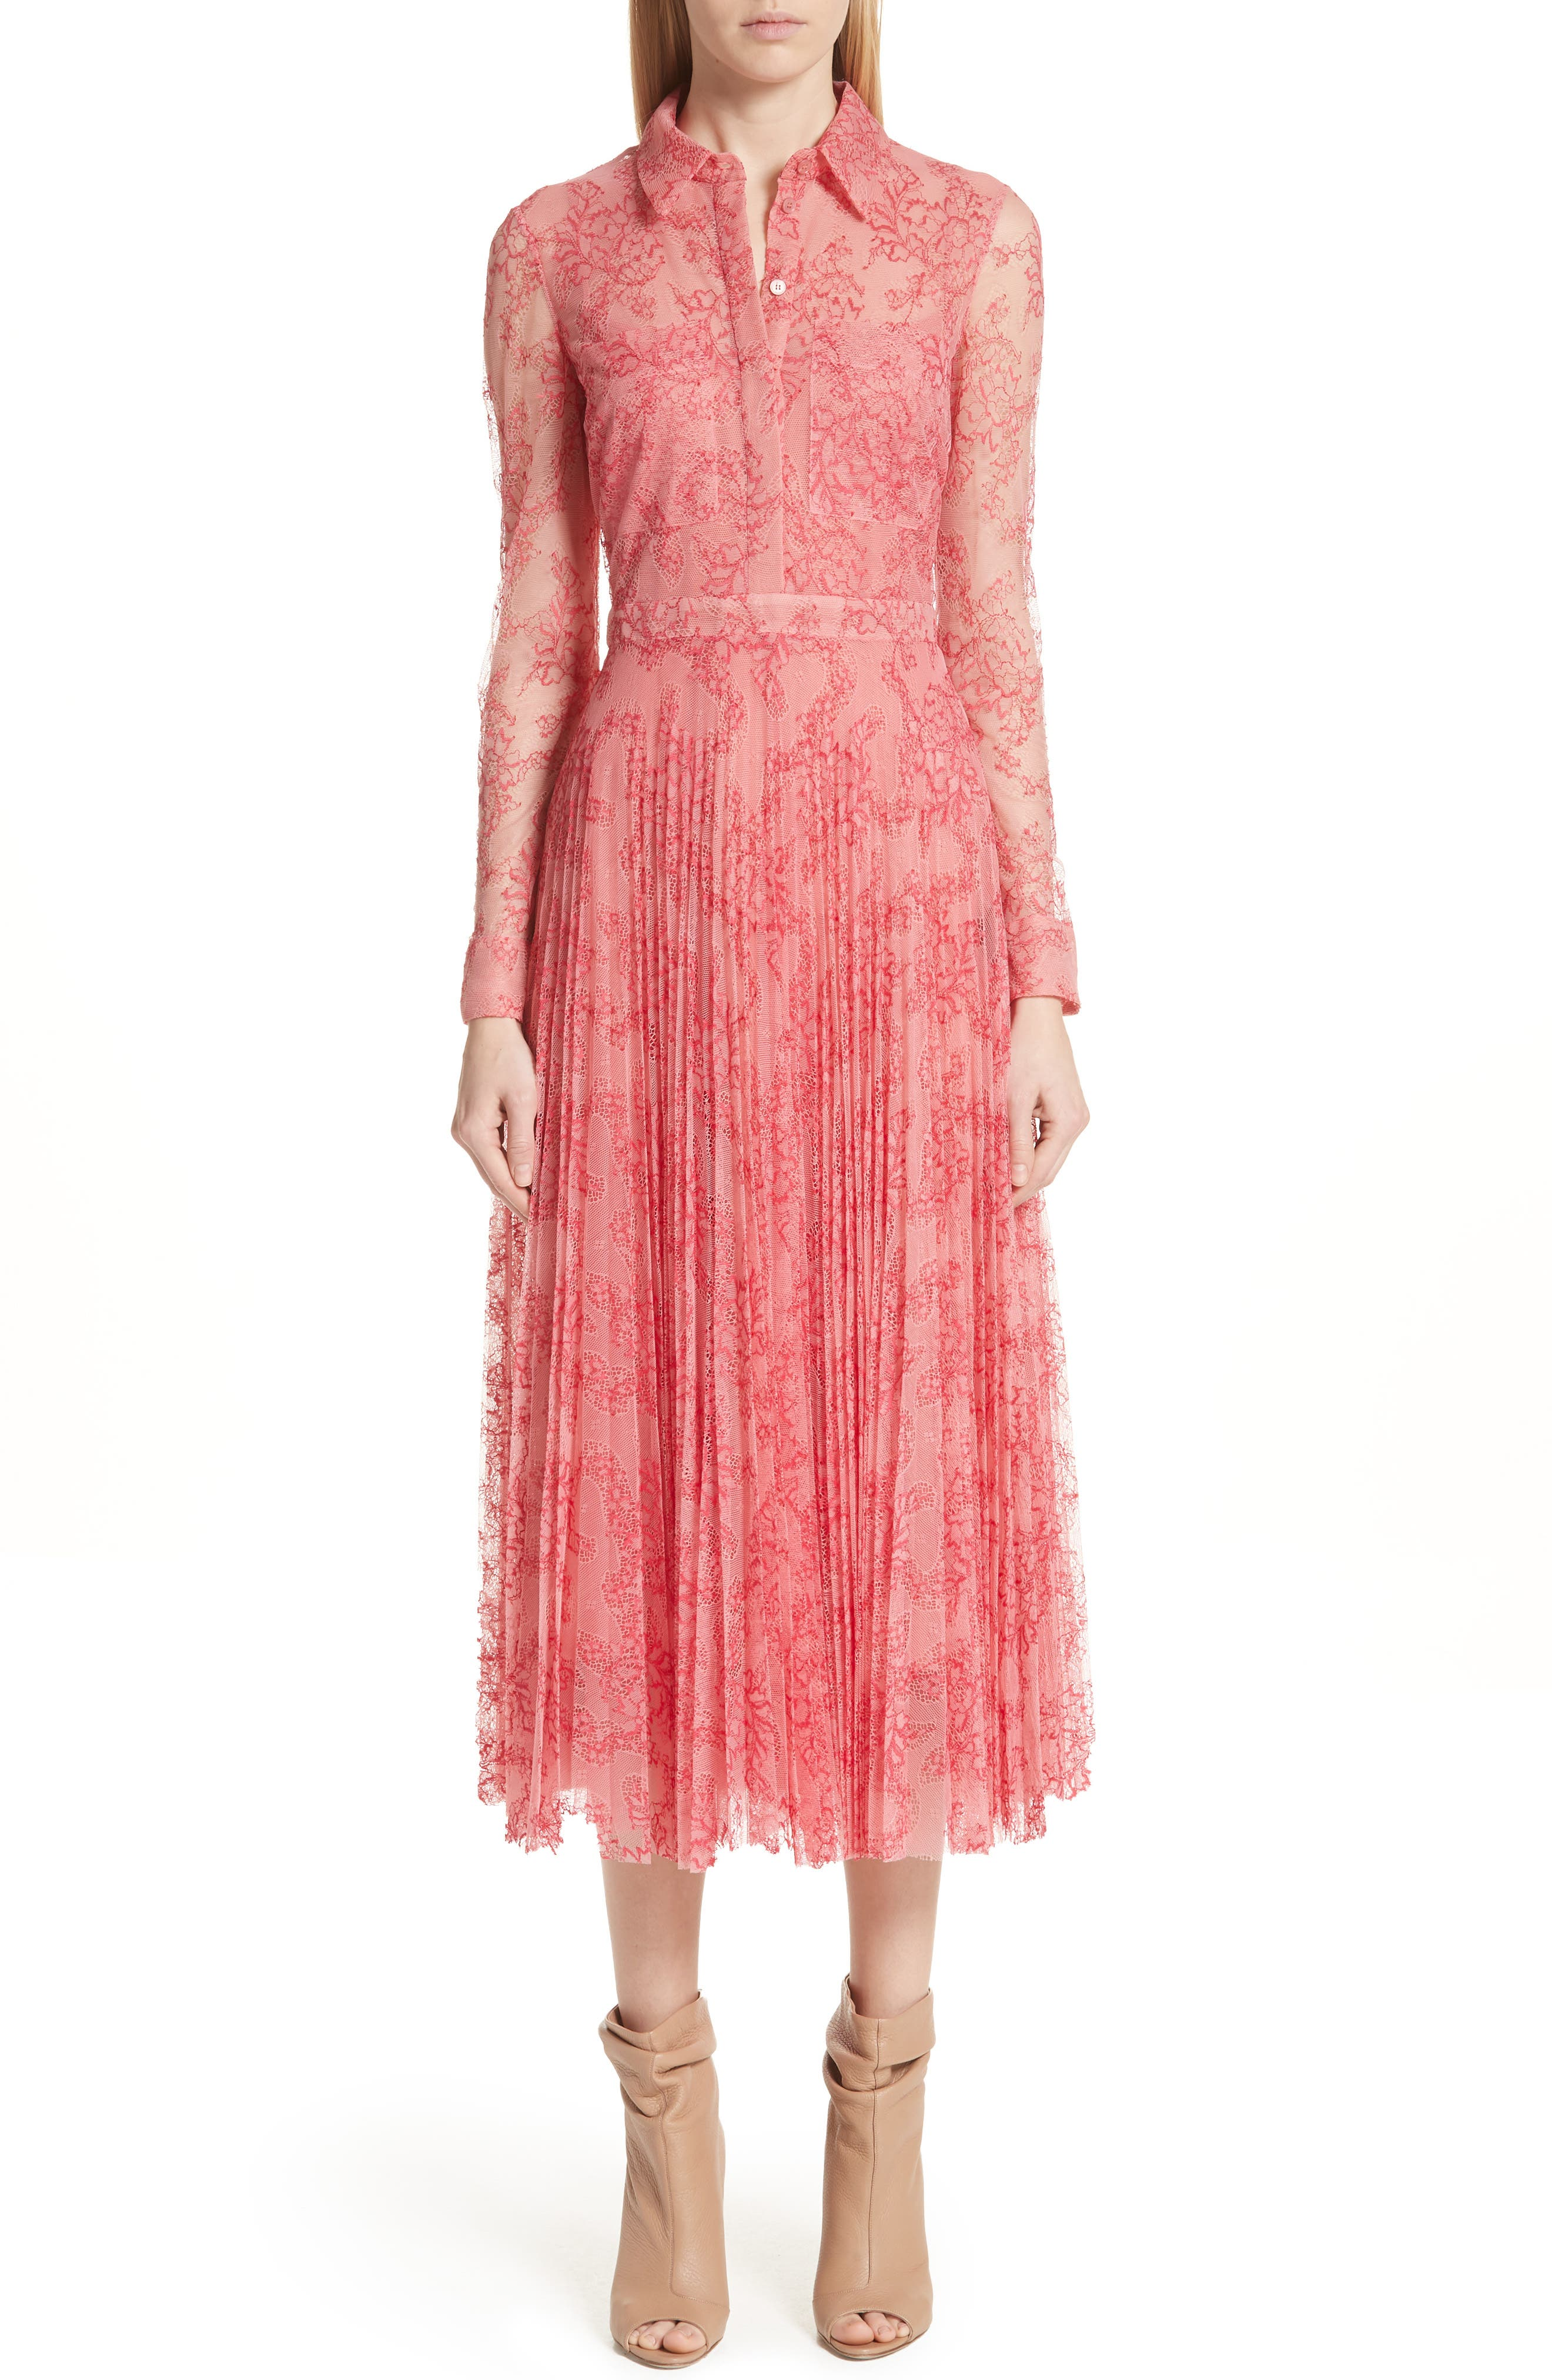 Shirtdress Cocktail & Party Dresses | Nordstrom